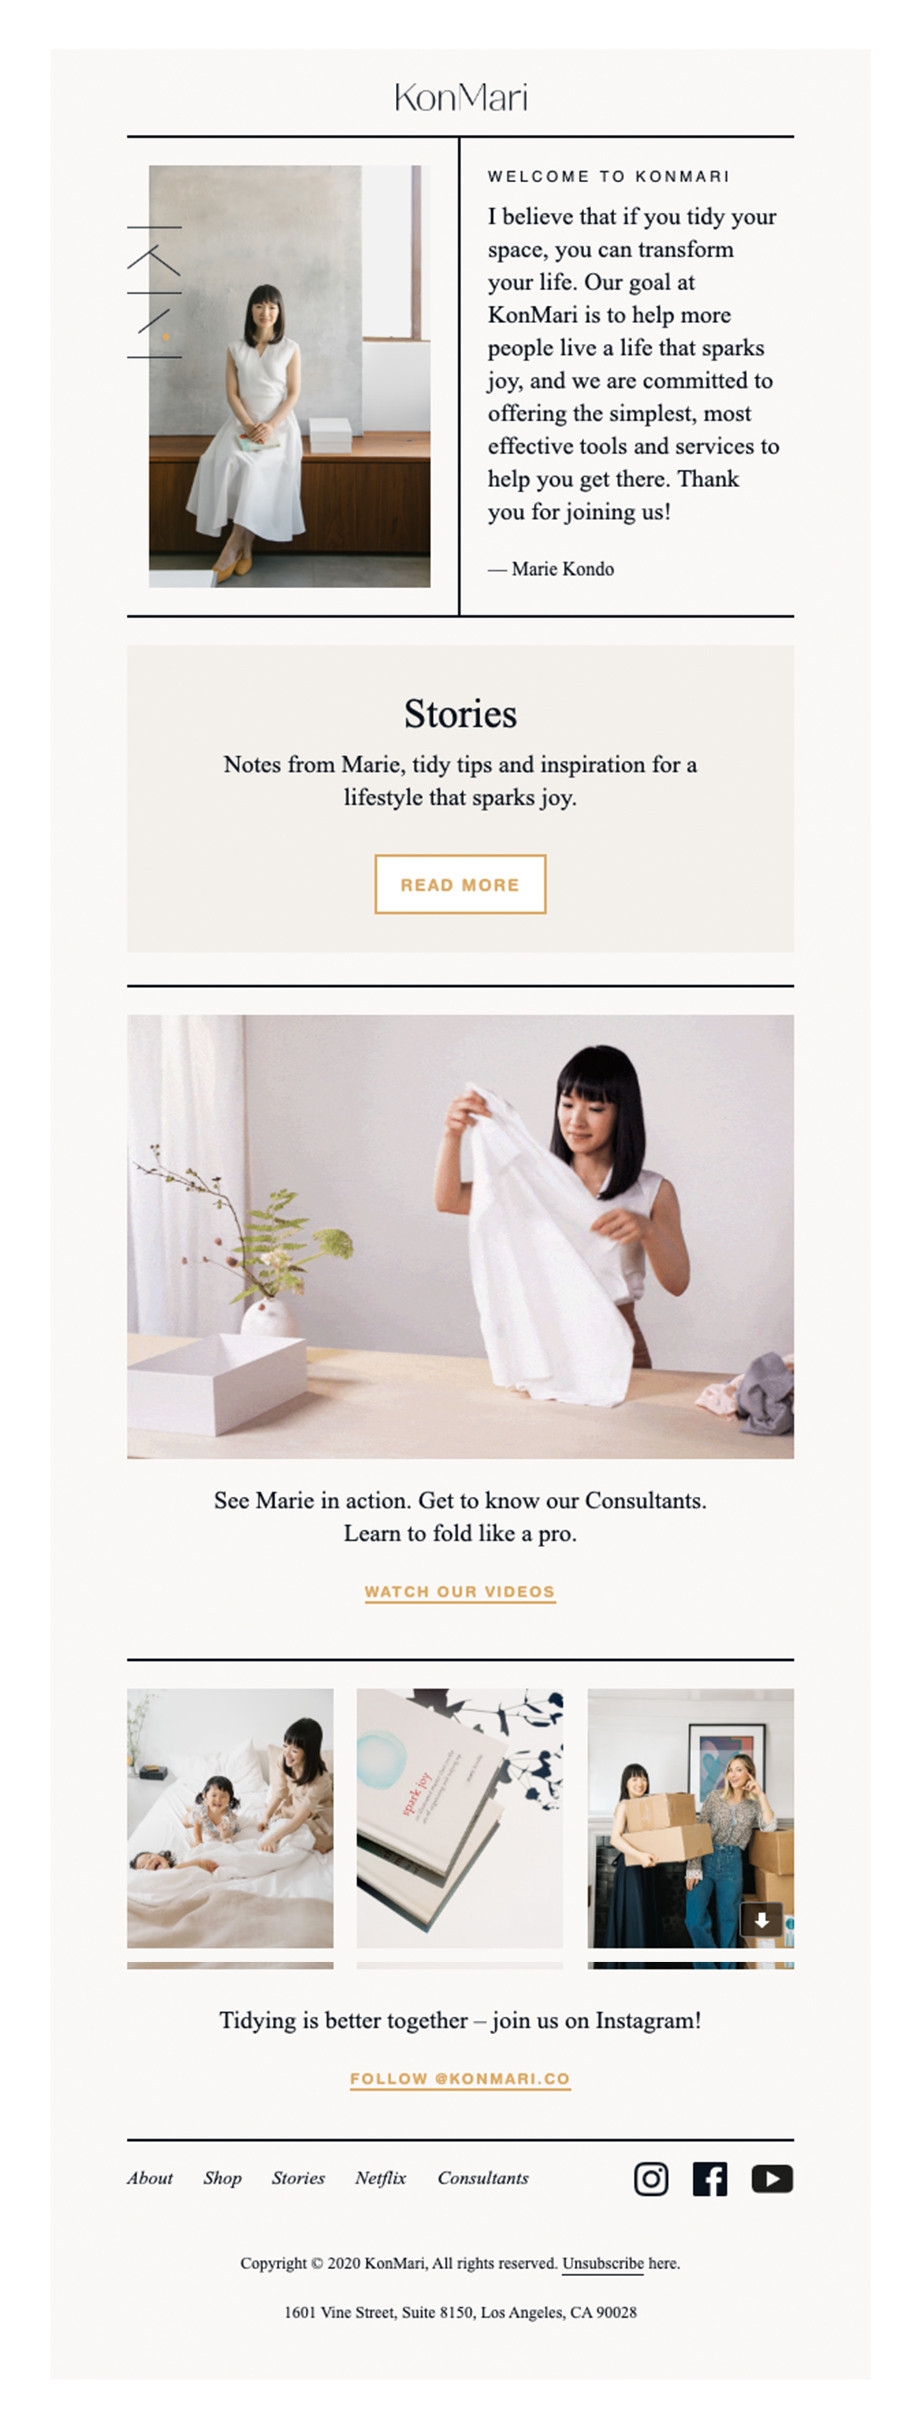 Welcome email by KonMari